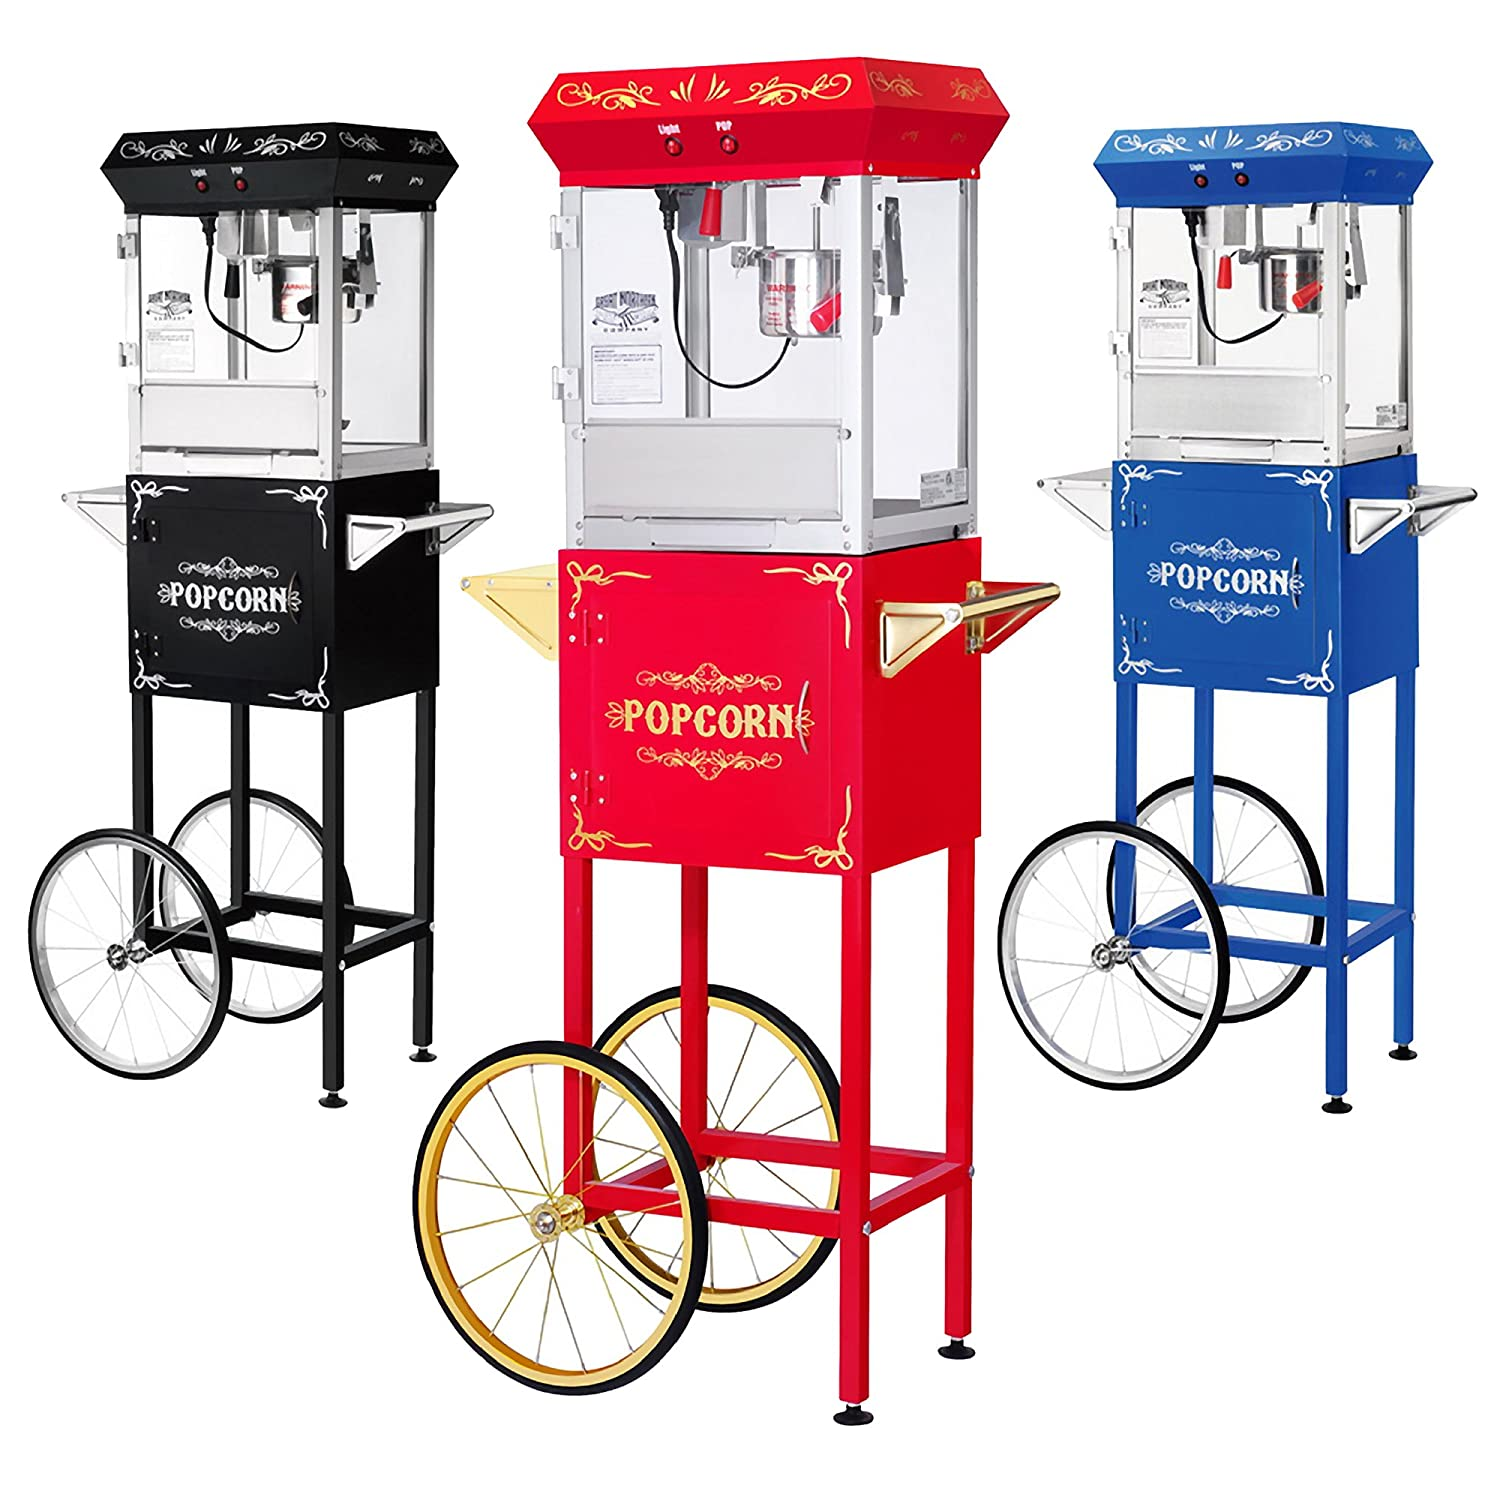 List of Great Northern Popcorn Red 6 oz. Ounce Foundation Vintage Style Popcorn Machine and Cart